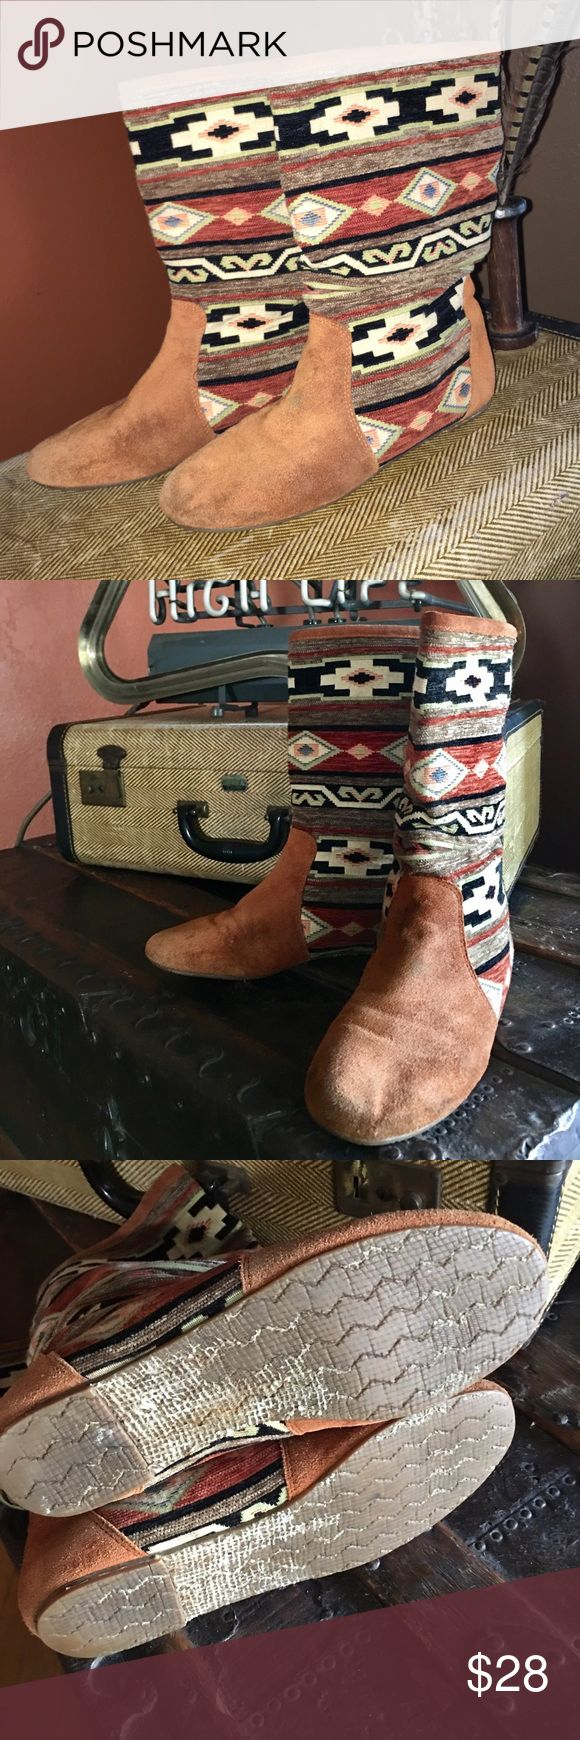 Vintage Aztec Zodiac boots Rad pair of vintage Zodiac boots with suede & Aztec tapestry. The sole & surface show some wear, but a light surface cleaning & they'd be even more amazing then they already are😍 Vintage Shoes Ankle Boots & Booties